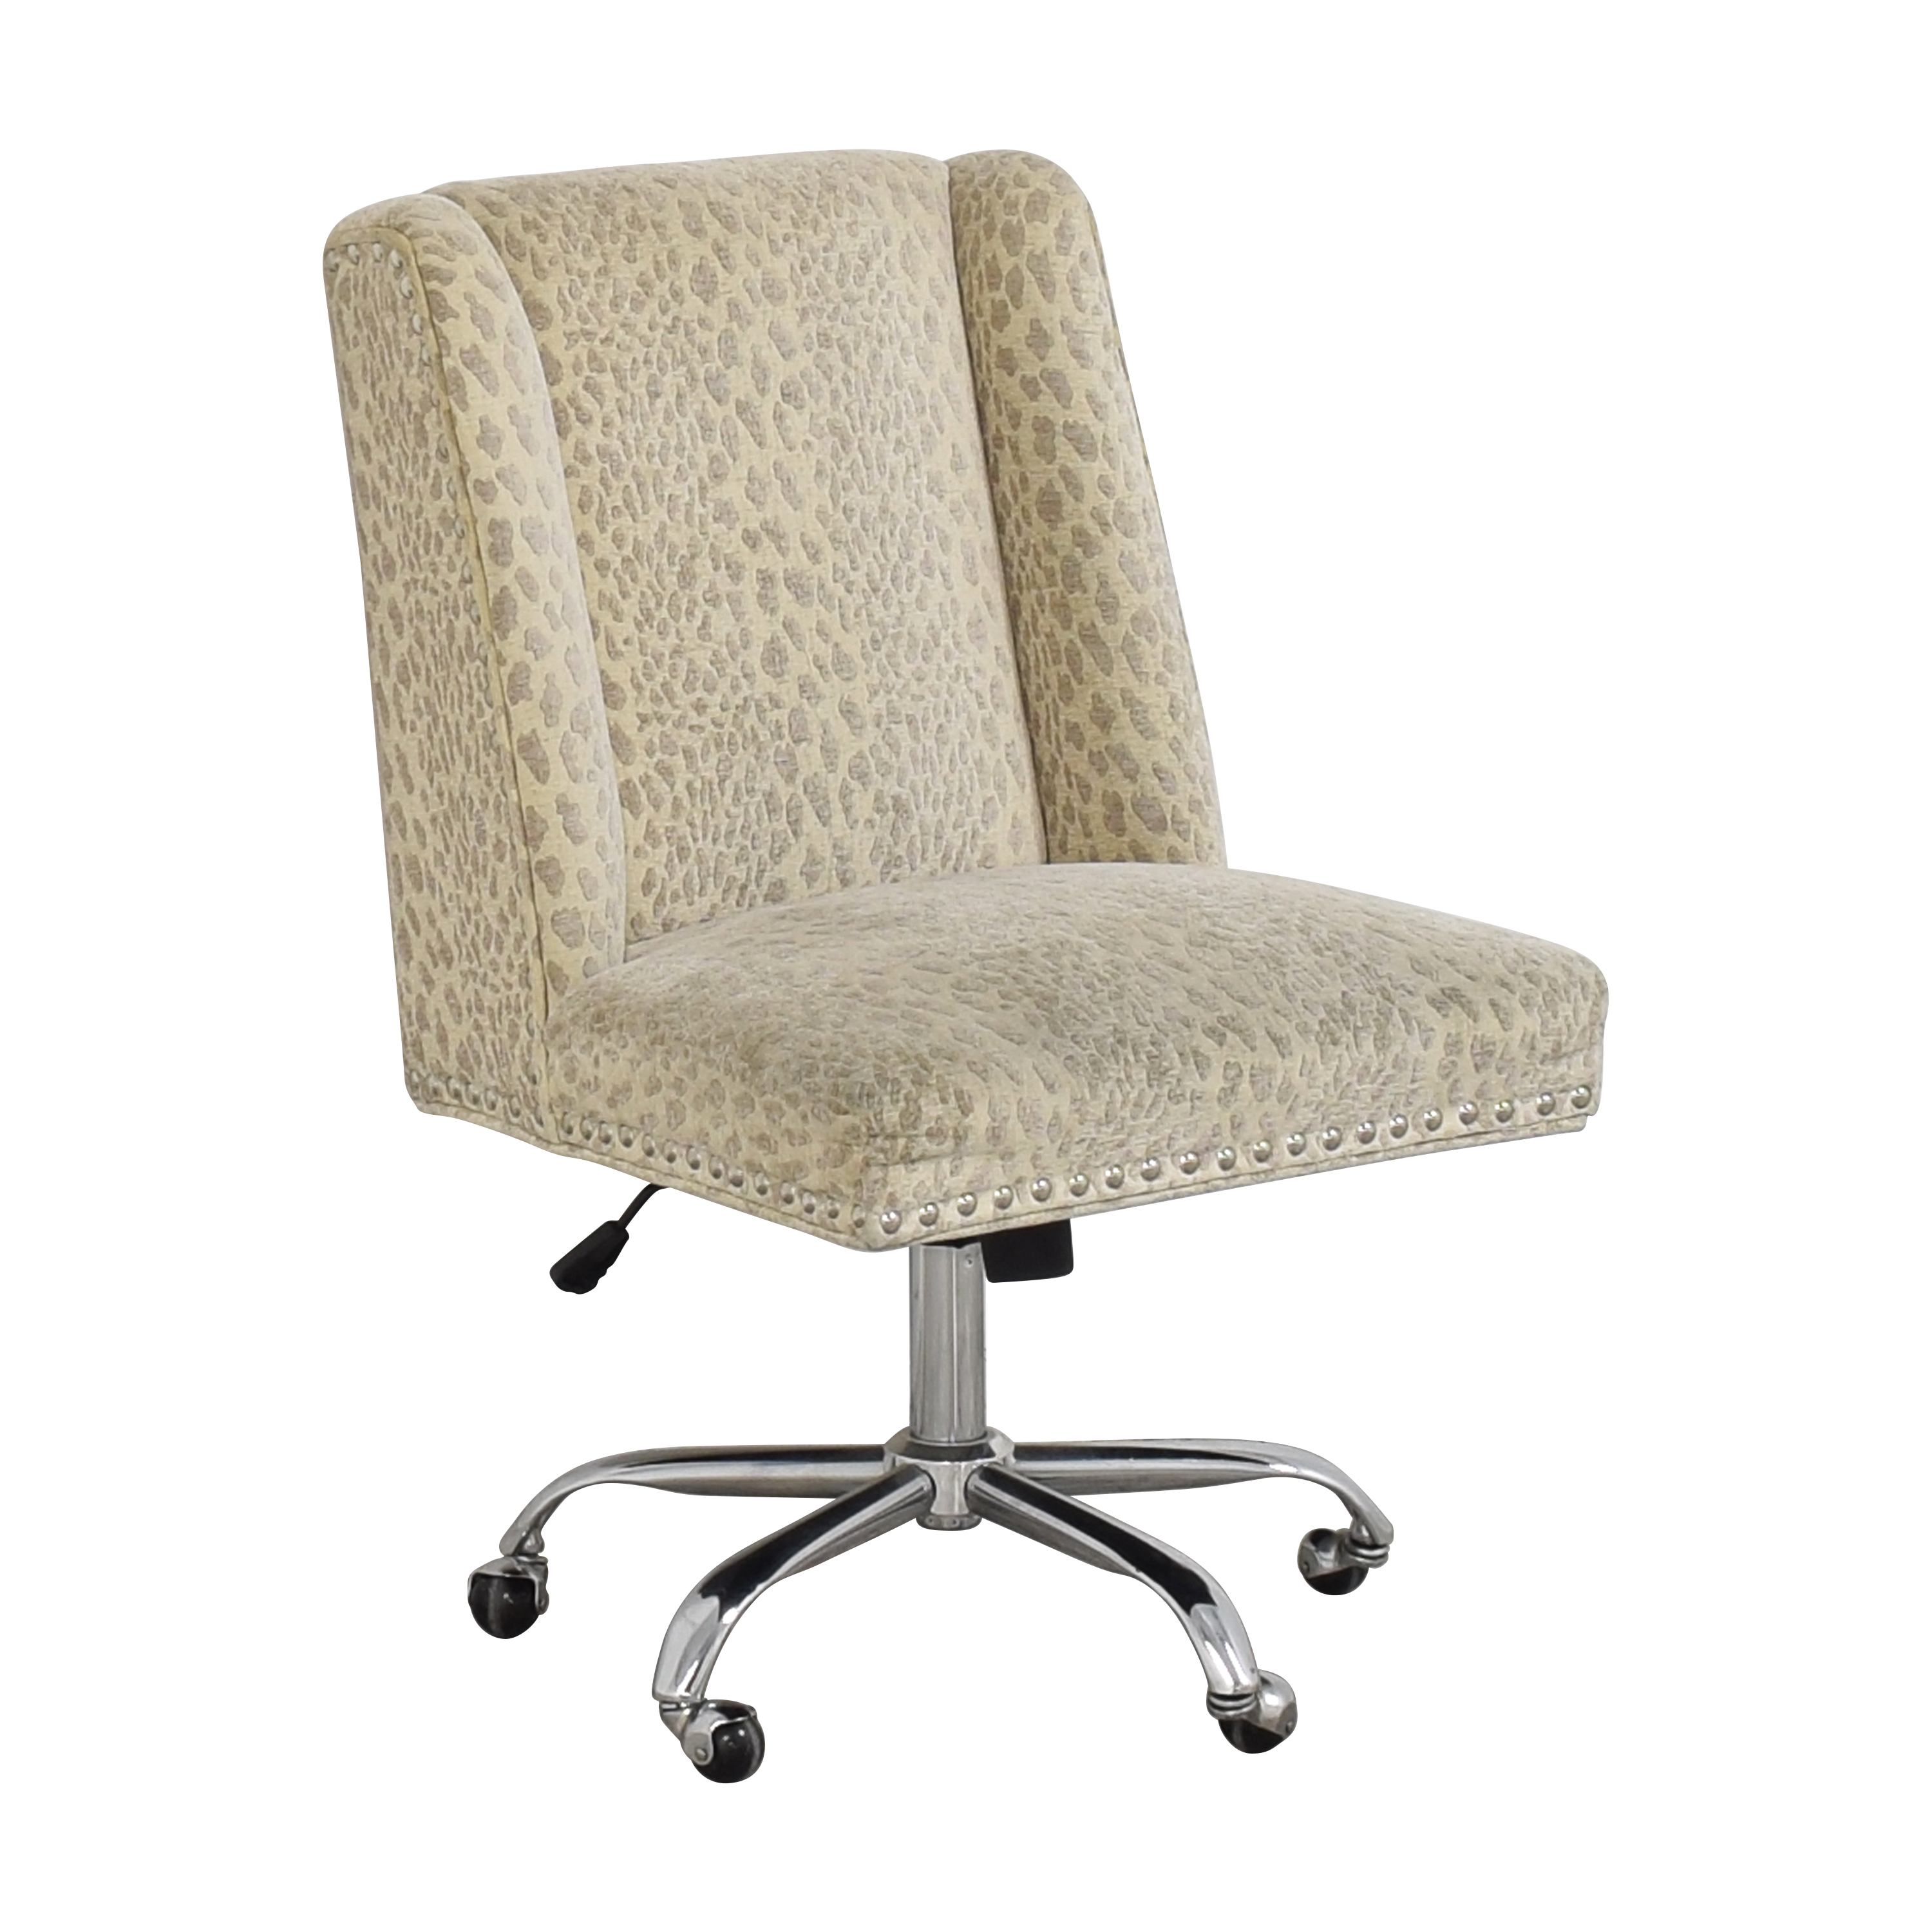 Fabric Desk Office Chair / Chairs